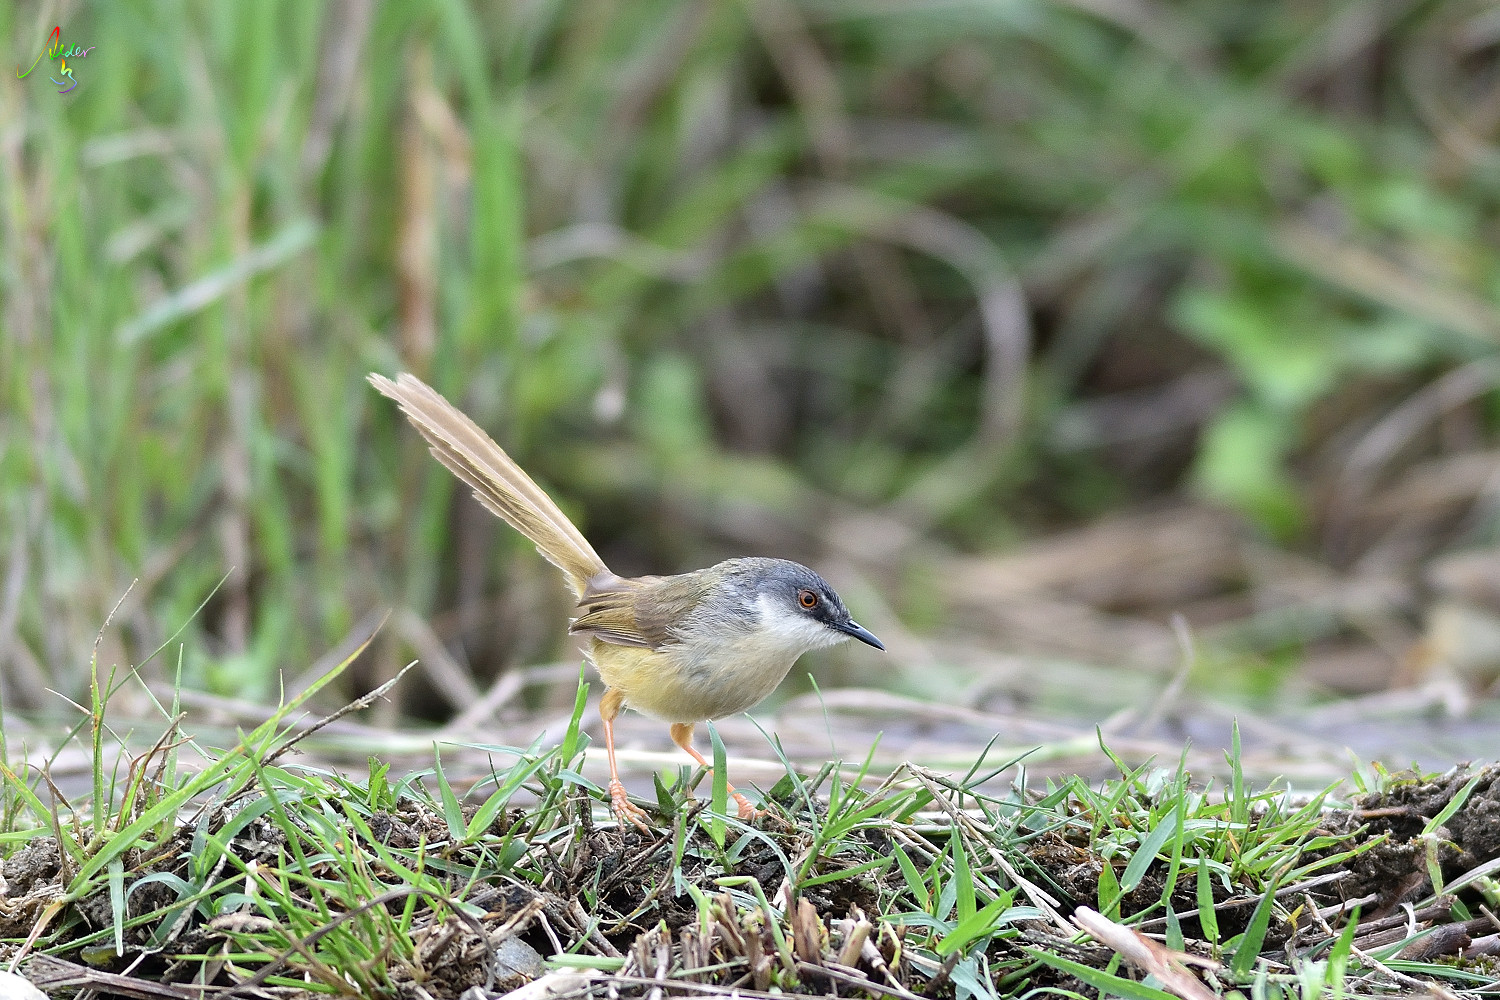 Yellow-bellied_Prinia_3063